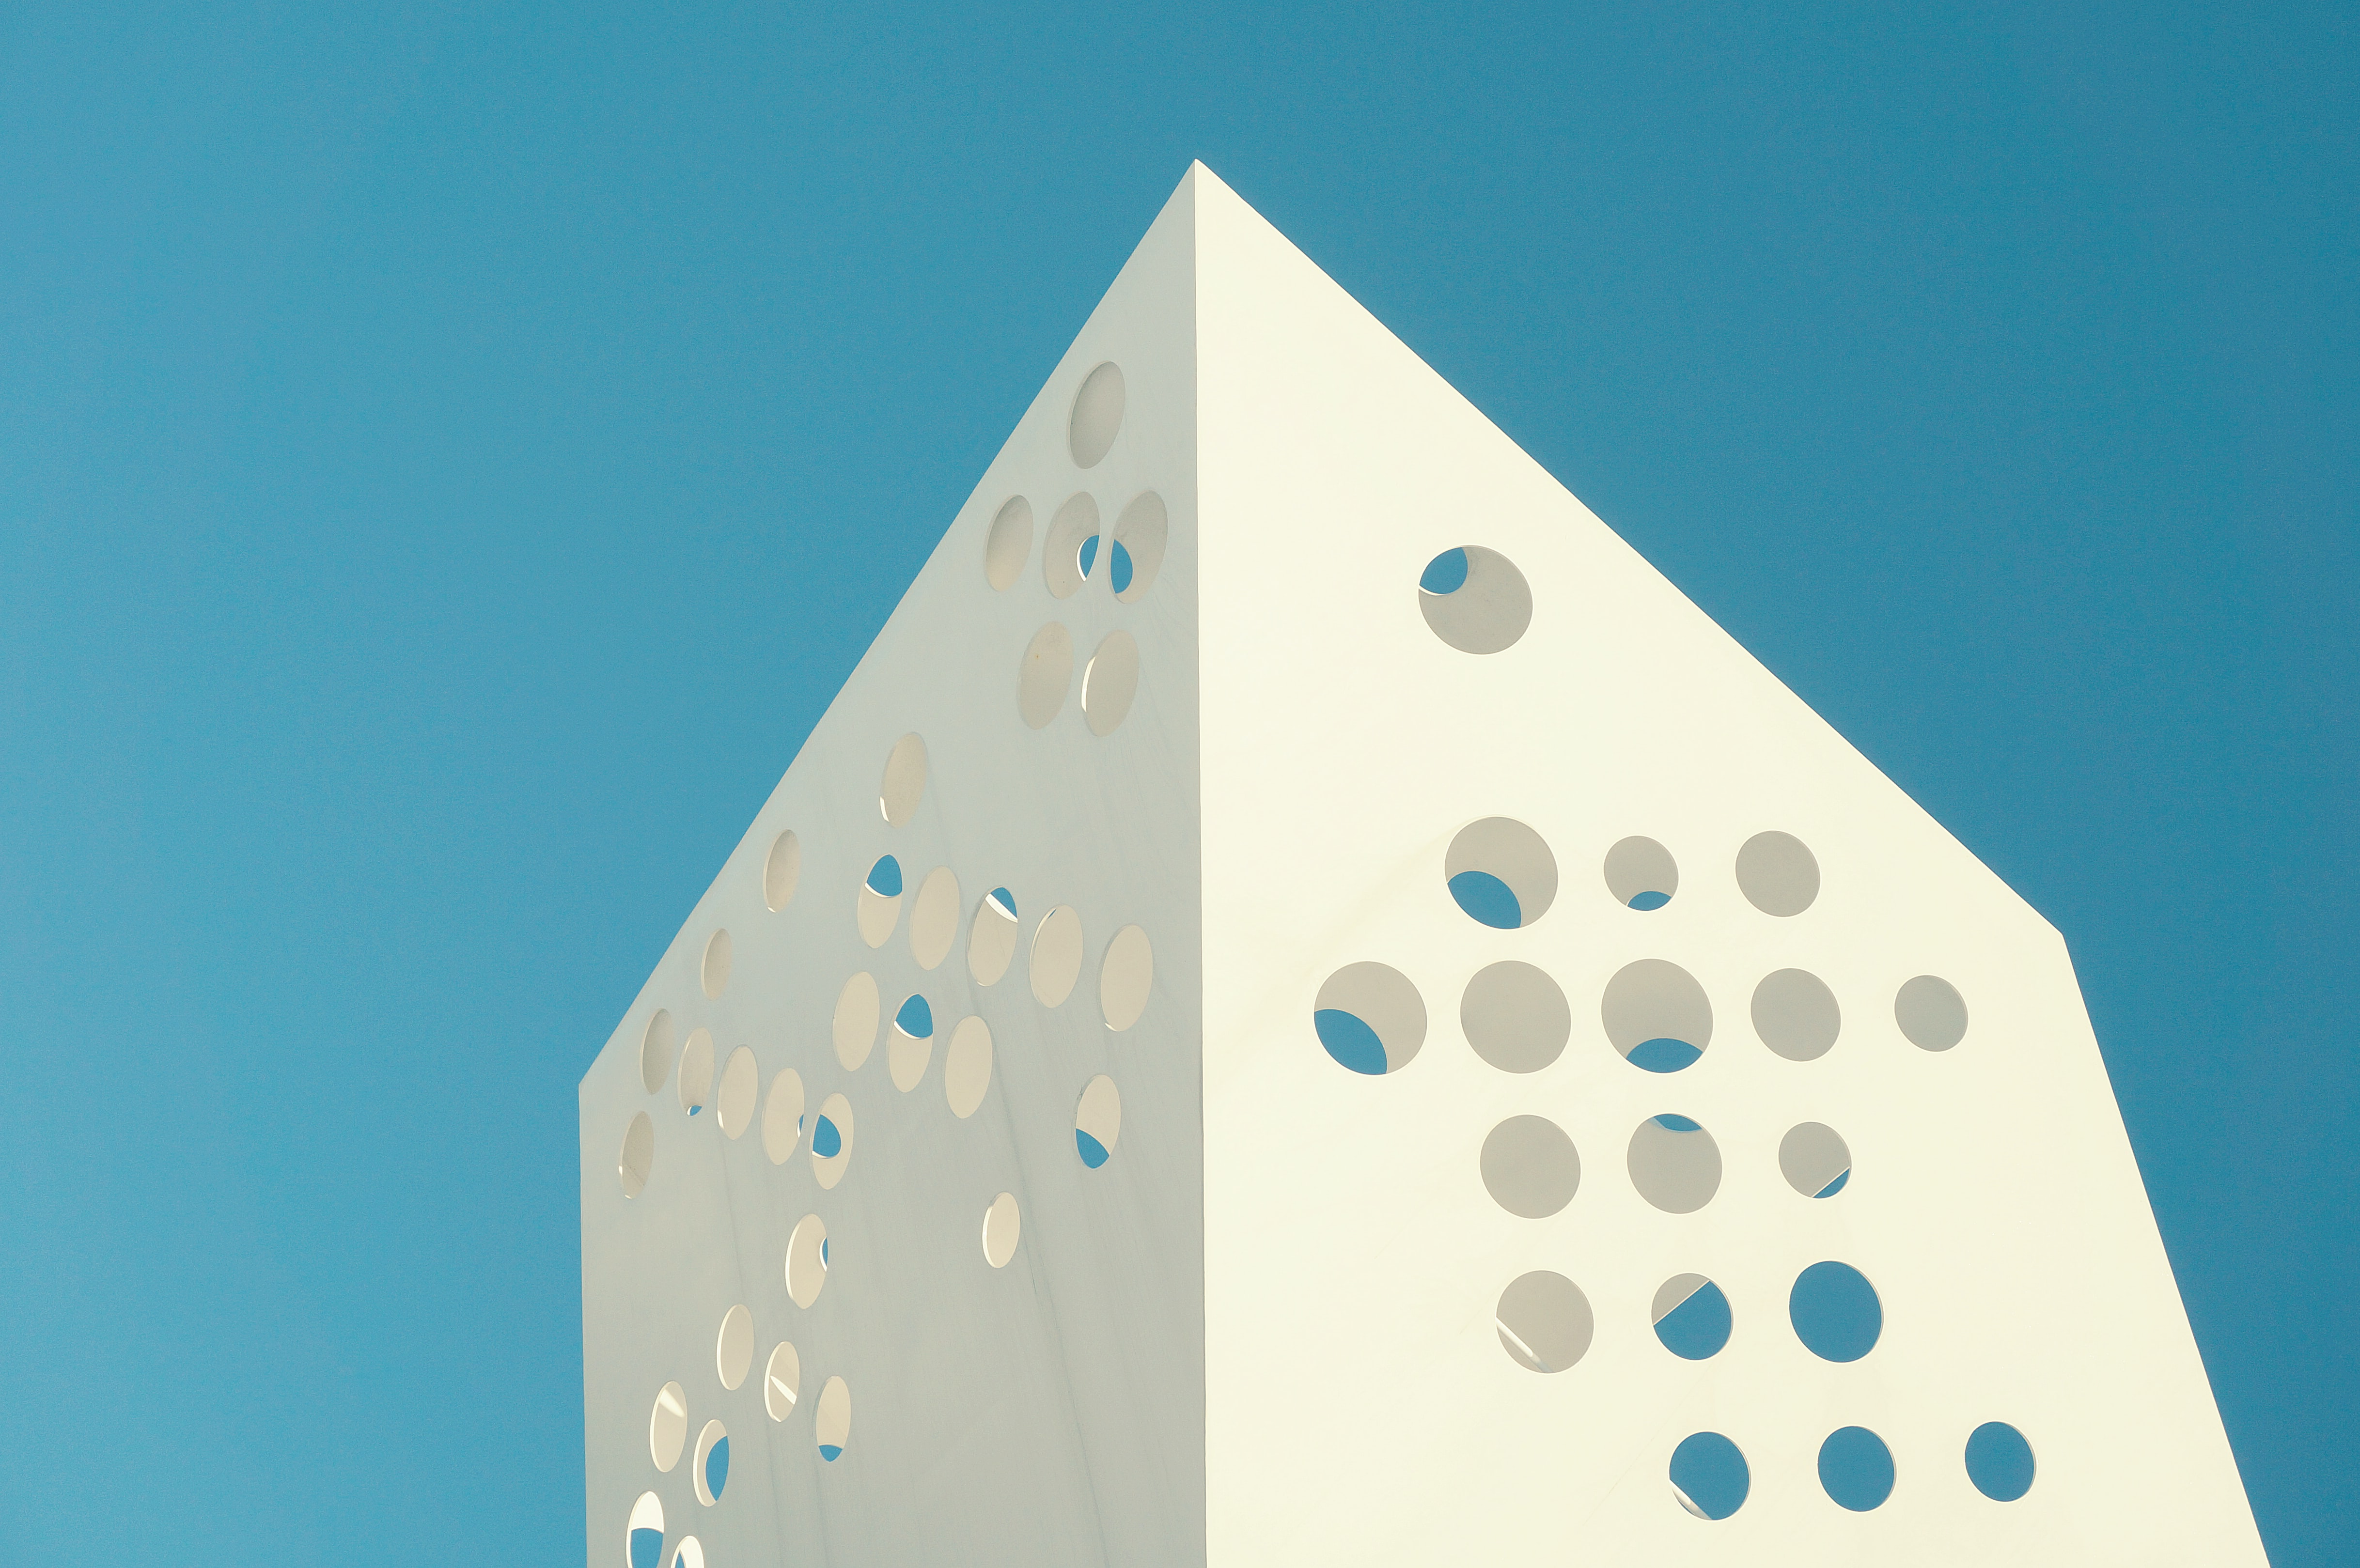 Unique design on a white building with holes in Denmark